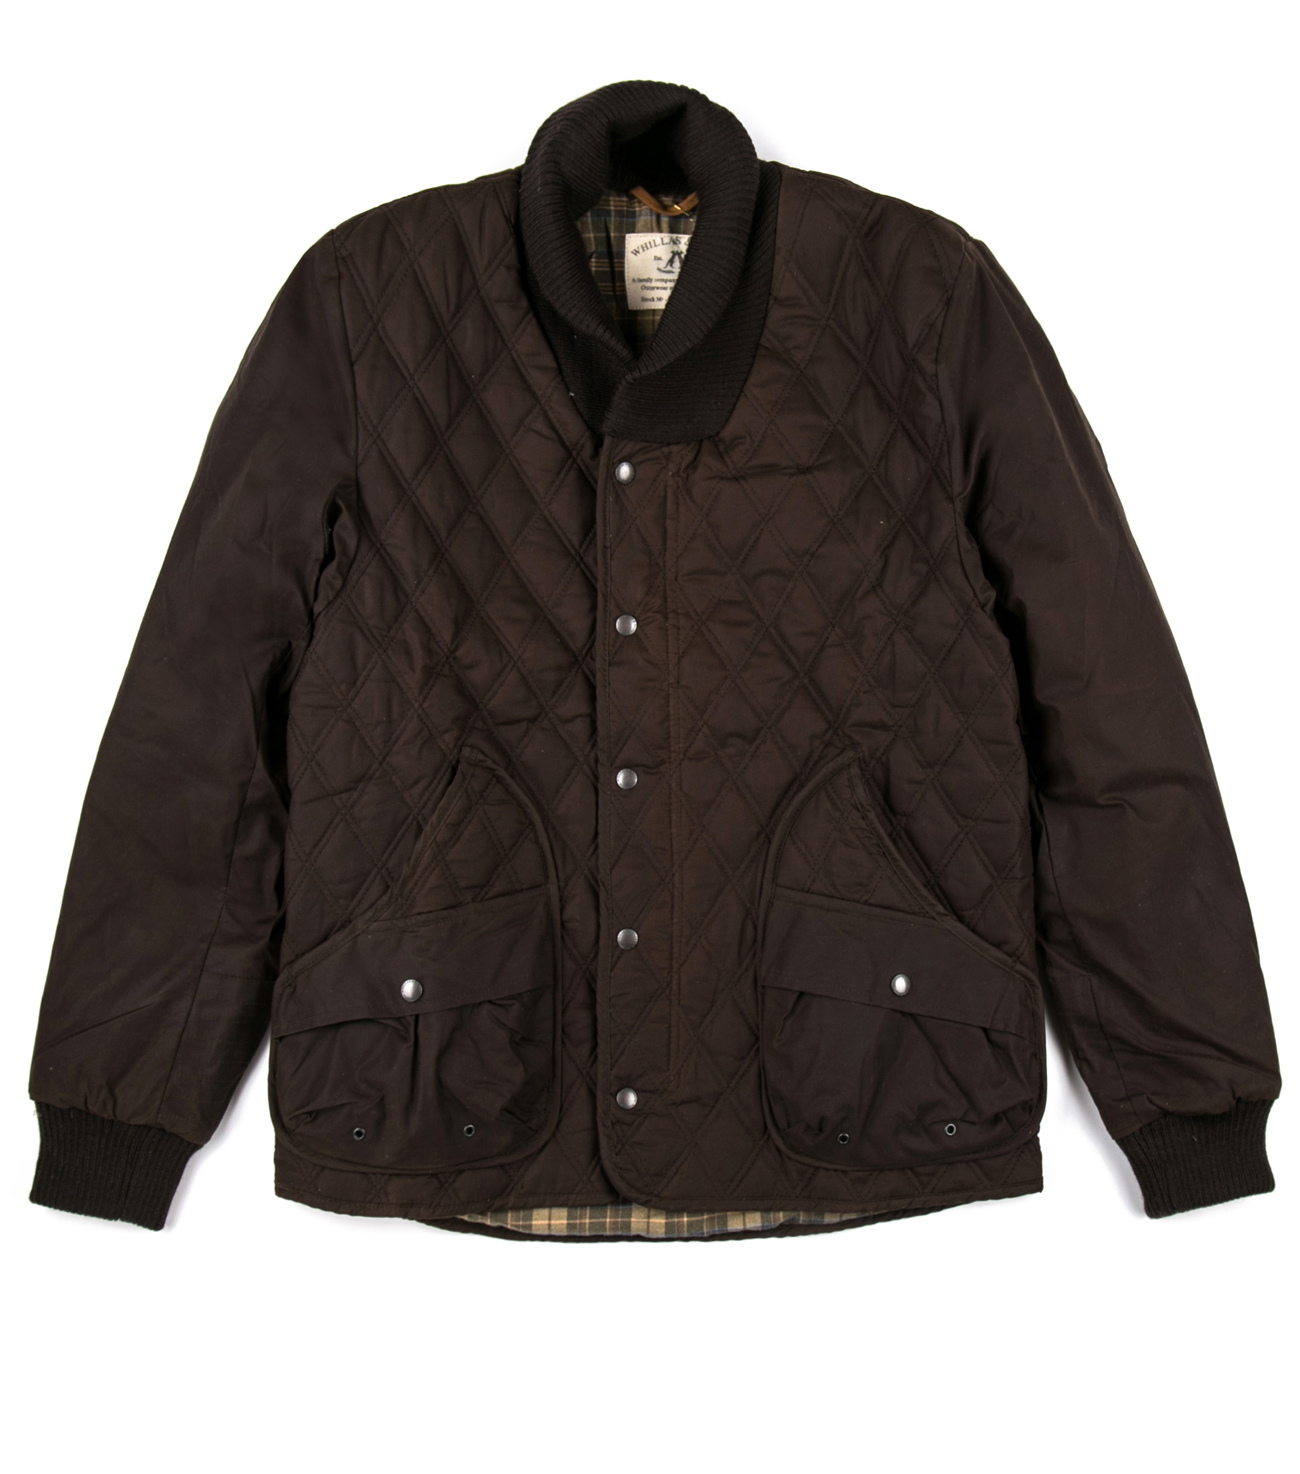 Kingsford Smith Jacket Brown